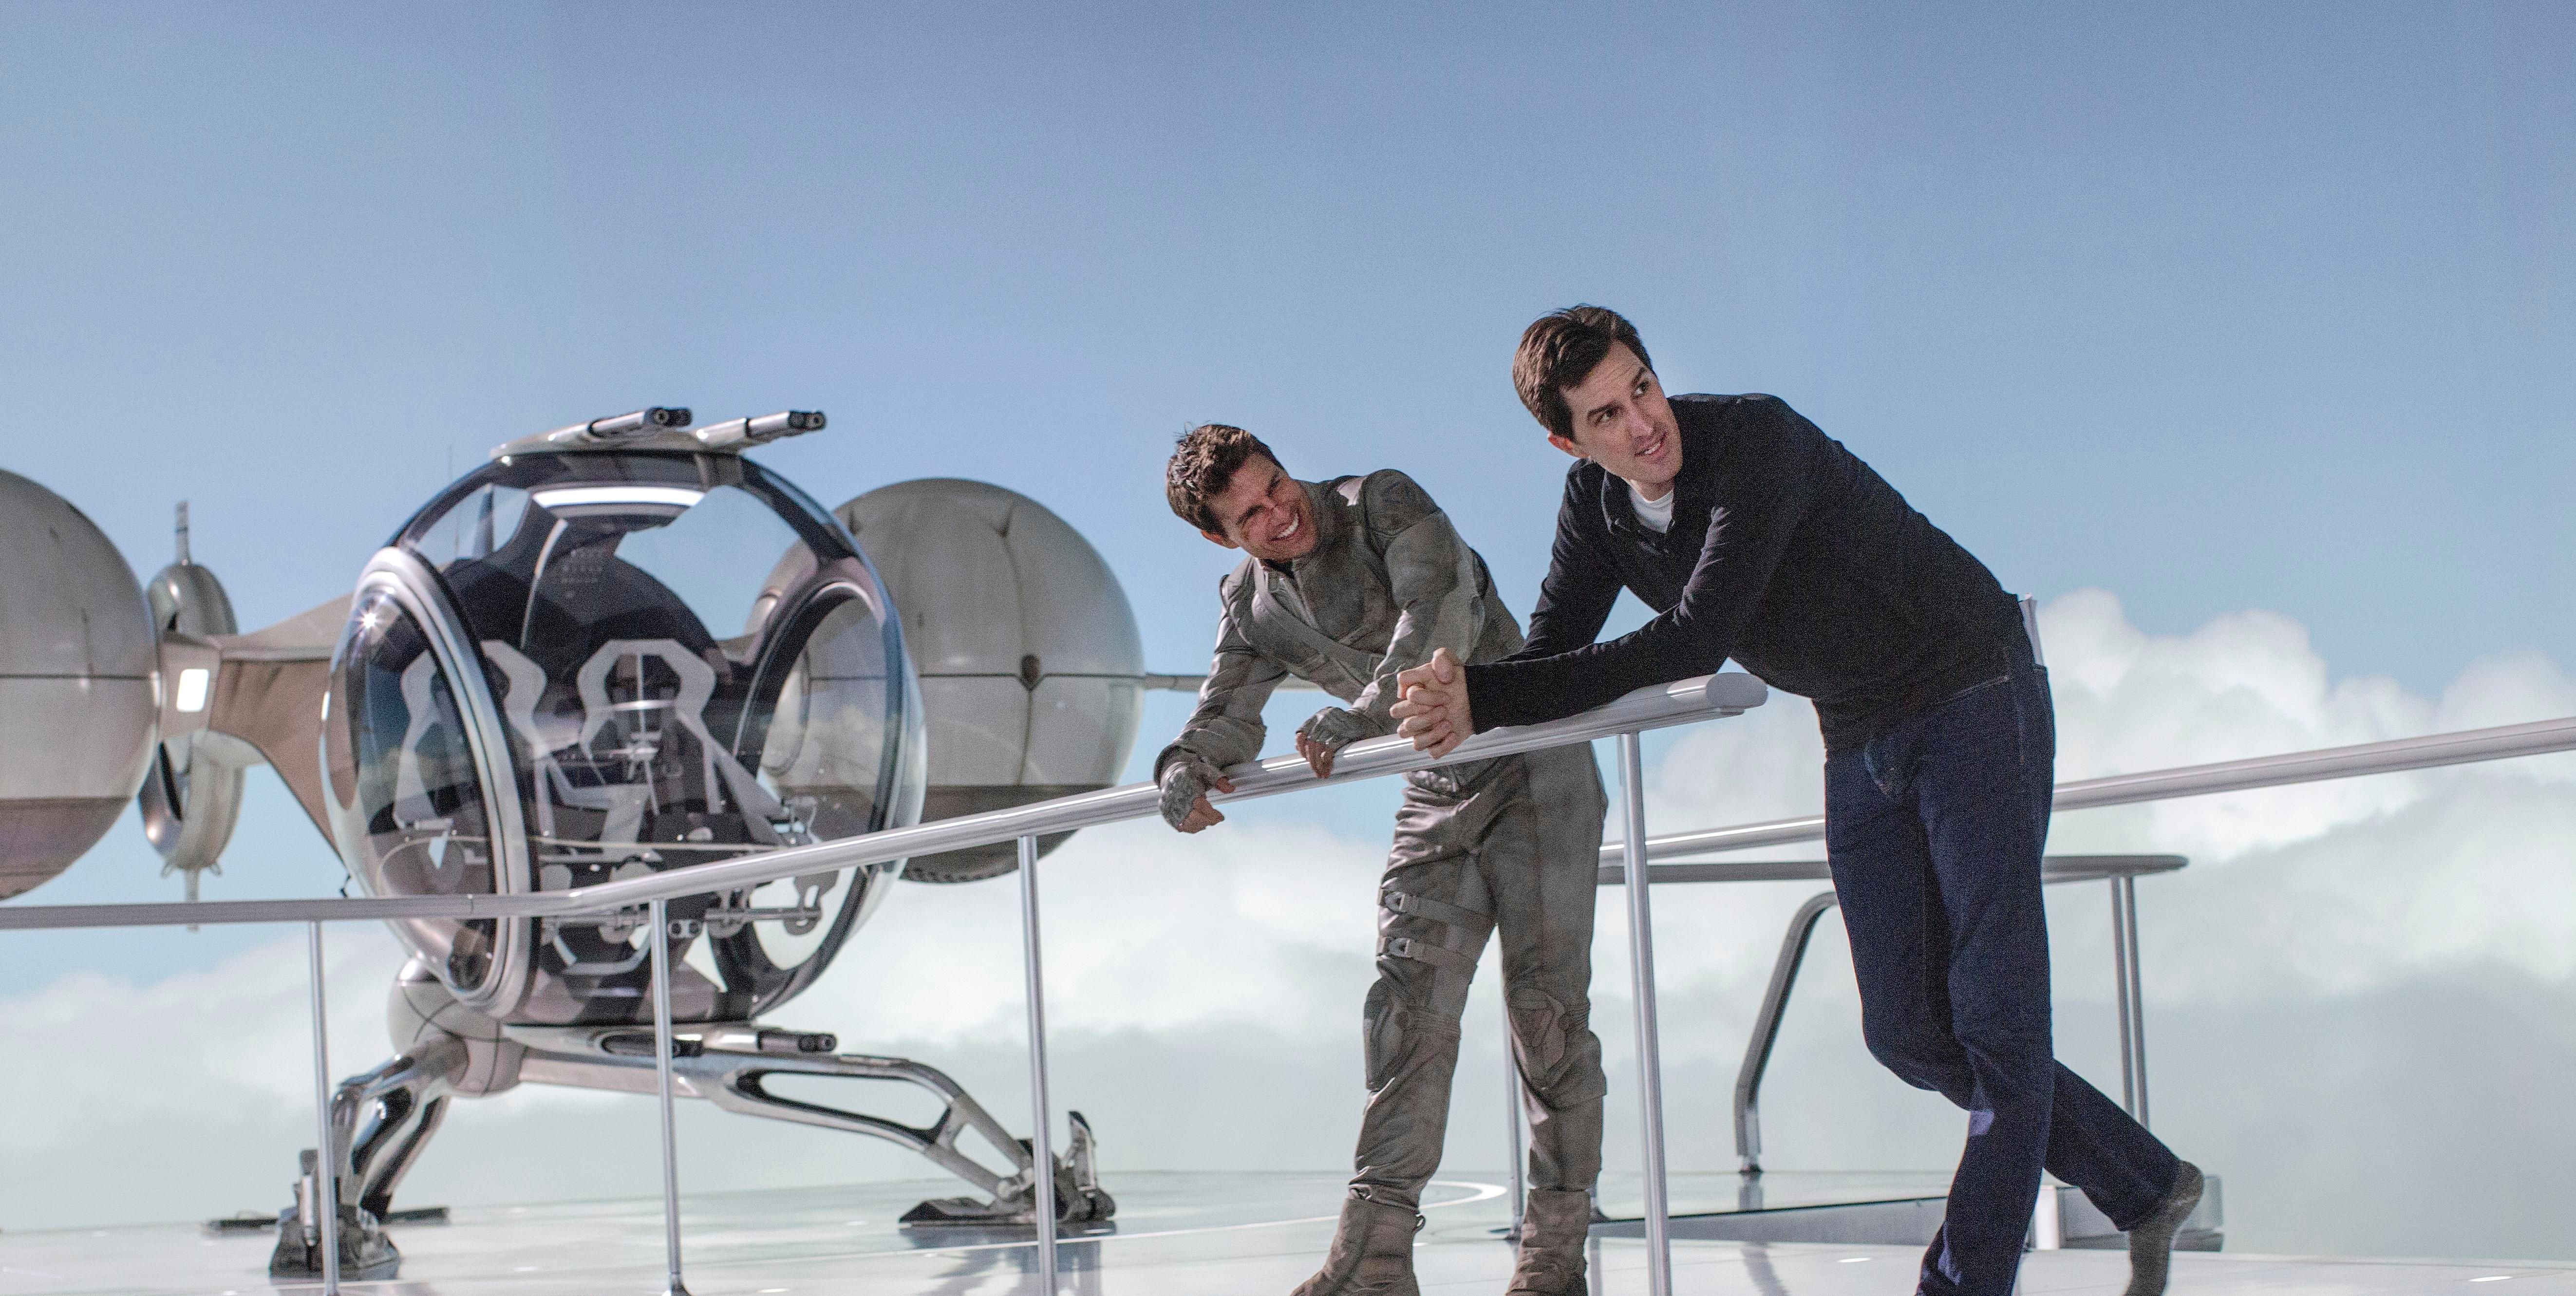 director joseph kosinski talks oblivion, why he chose not to do 3d